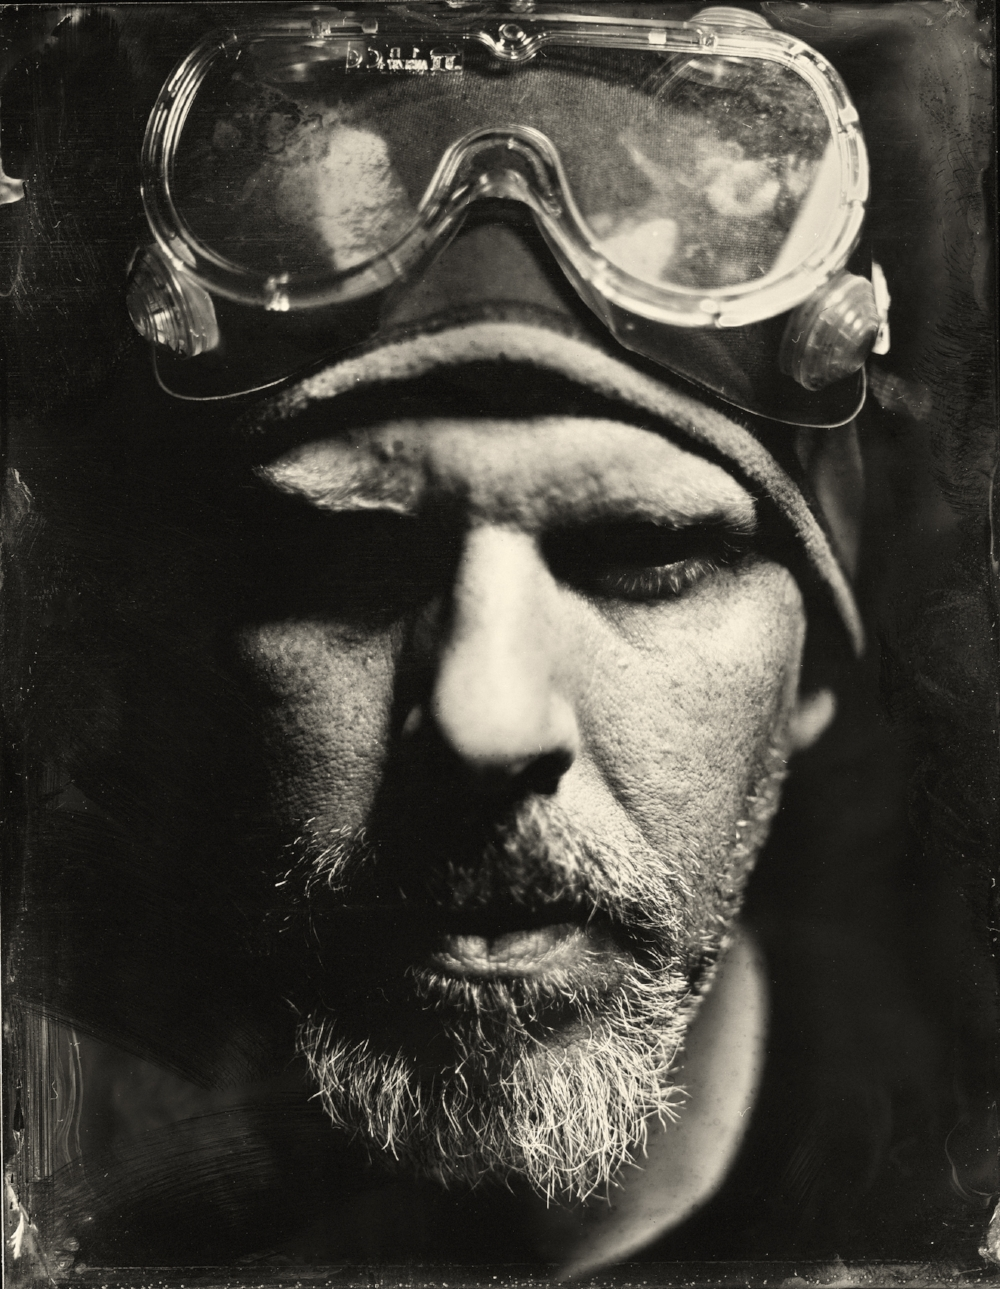 About me - In 2014 I began to explore wet-plate collodion photography. I saw in this mid-nineteenth century process an opportunity to reconnect with photography in a tactile and physical way. I had lost this connection when I left the darkroom for the sterile, hyper-perfect digital world where authenticity is so often stripped away through countless edits and filters.Using fine, rare lenses dating back to the 1850's mounted to simple, box and bellows type cameras, images are created one image at a time by hand using light and chemistry. Every image is a one-of-a-kind original. No wrinkles are removed, no skies are darkened. Perfect imperfection.Along with my passion for wet-plate photography, I am an active commercial photographer with twenty-five years of experience under my belt. When I'm not working with chemicals and 150 year old lenses and cameras, I am often on the road or in my studio shooting assignments for ad agencies, corporations and freelance designers throughout the region.When I'm not looking through a lens, it's all about the fishing.Douglas Lloyd